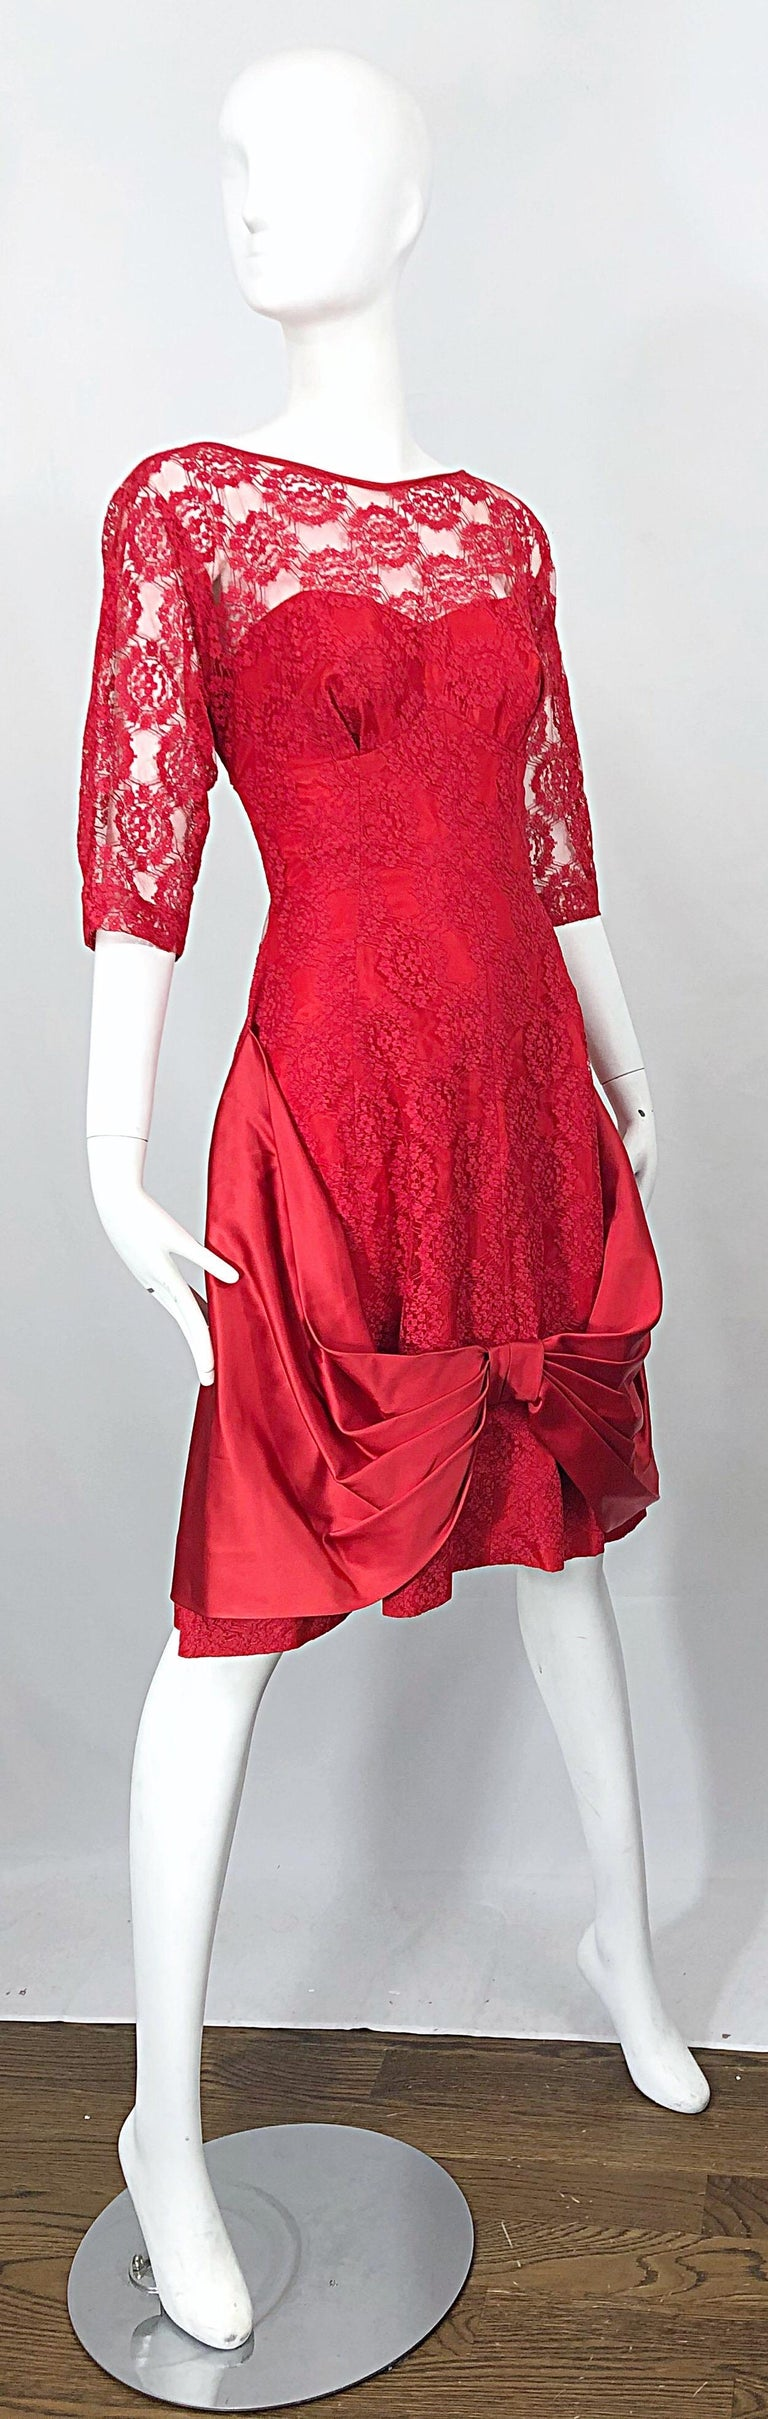 1950s Demi Couture Lips Stick Red Silk Lace 3/4 Sleeve Vintage 50s Dress For Sale 5